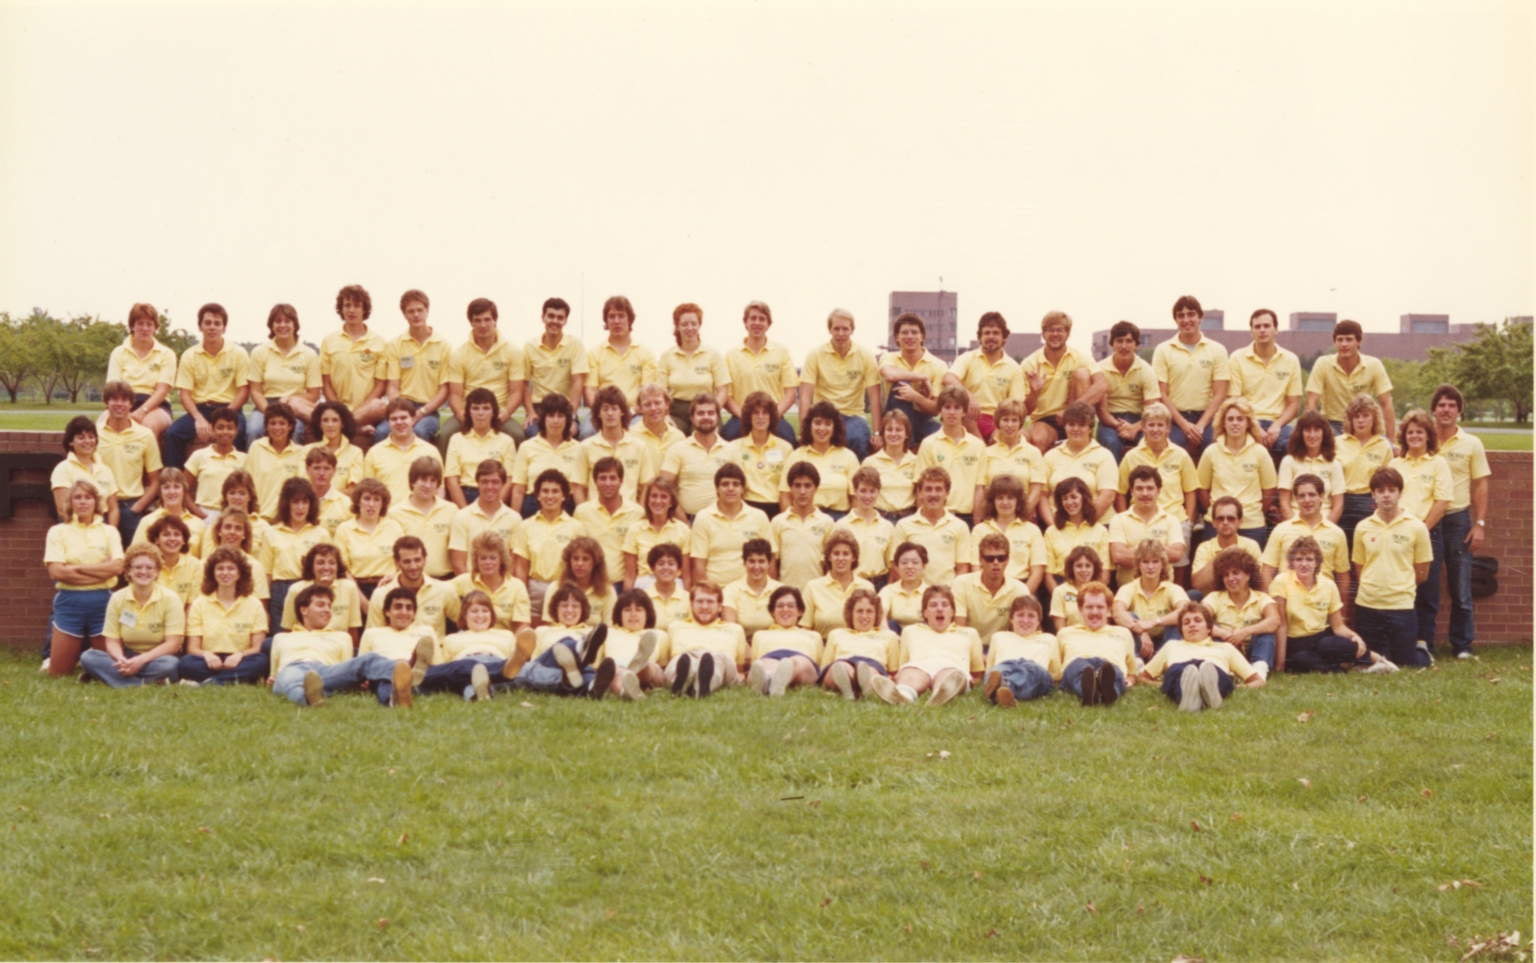 1984 Student Orientation Services Leaders